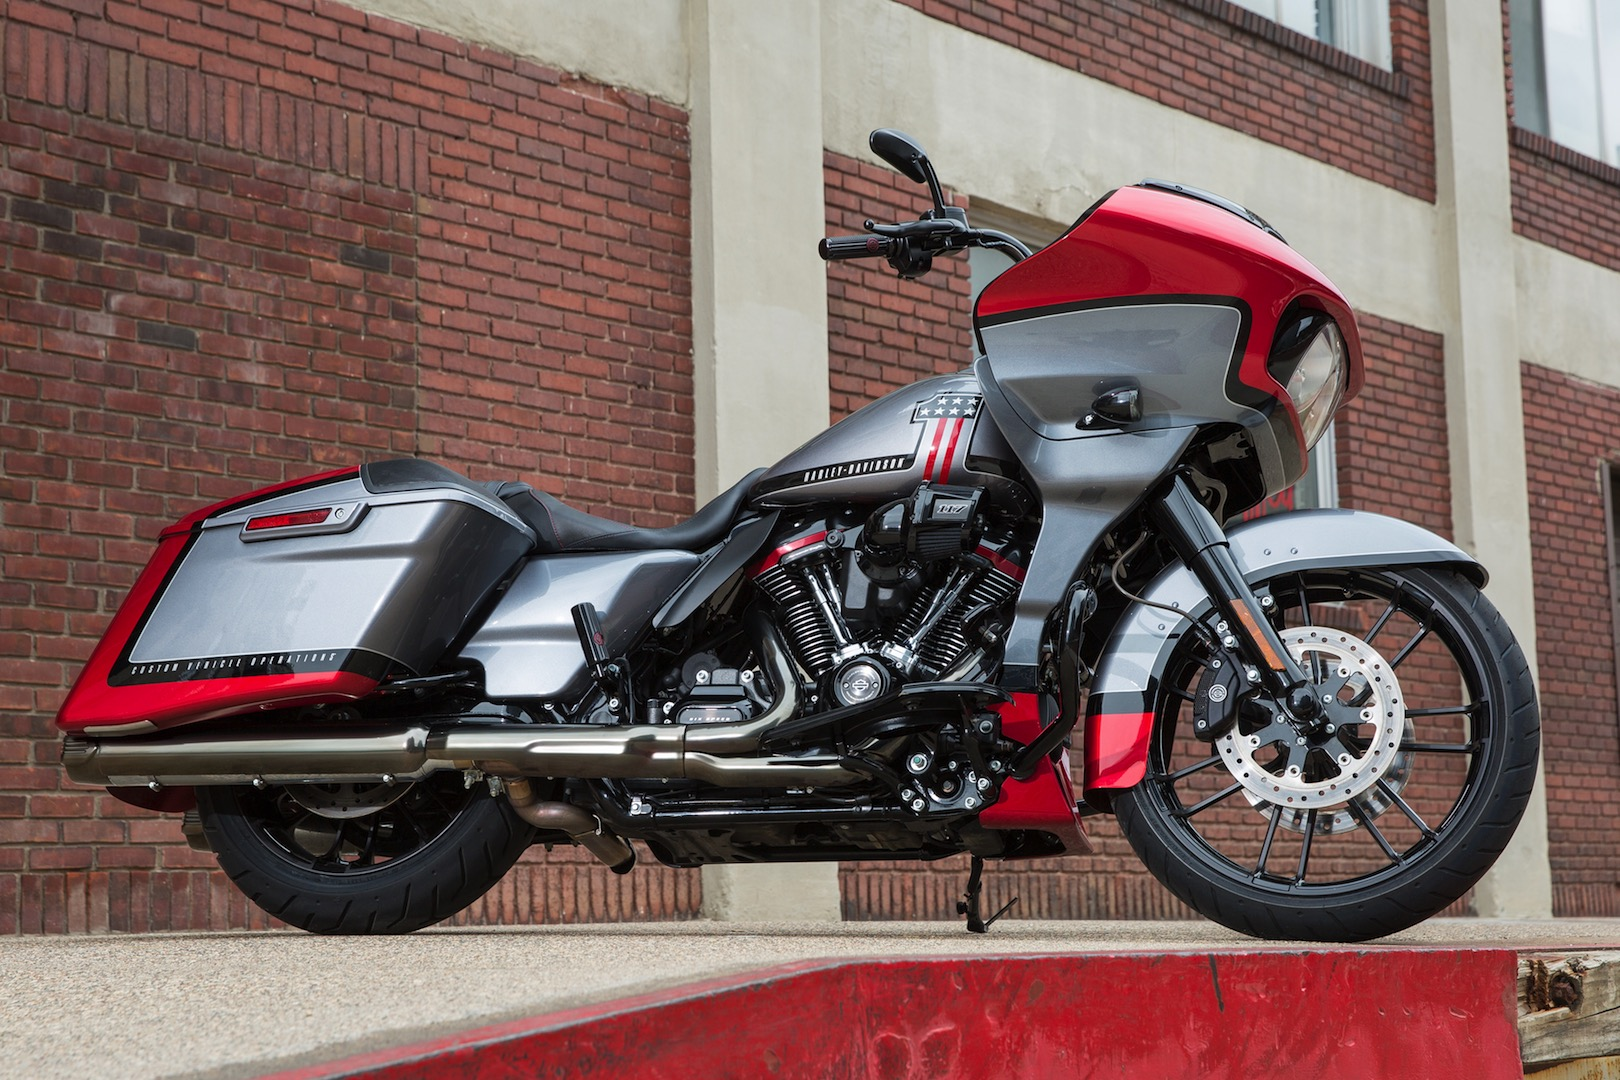 2018 Cvo Road Glide Review >> 2019 Harley-Davidson CVO Road Glide Review (18 Fast Facts) – New Boom! Box | GearOpen